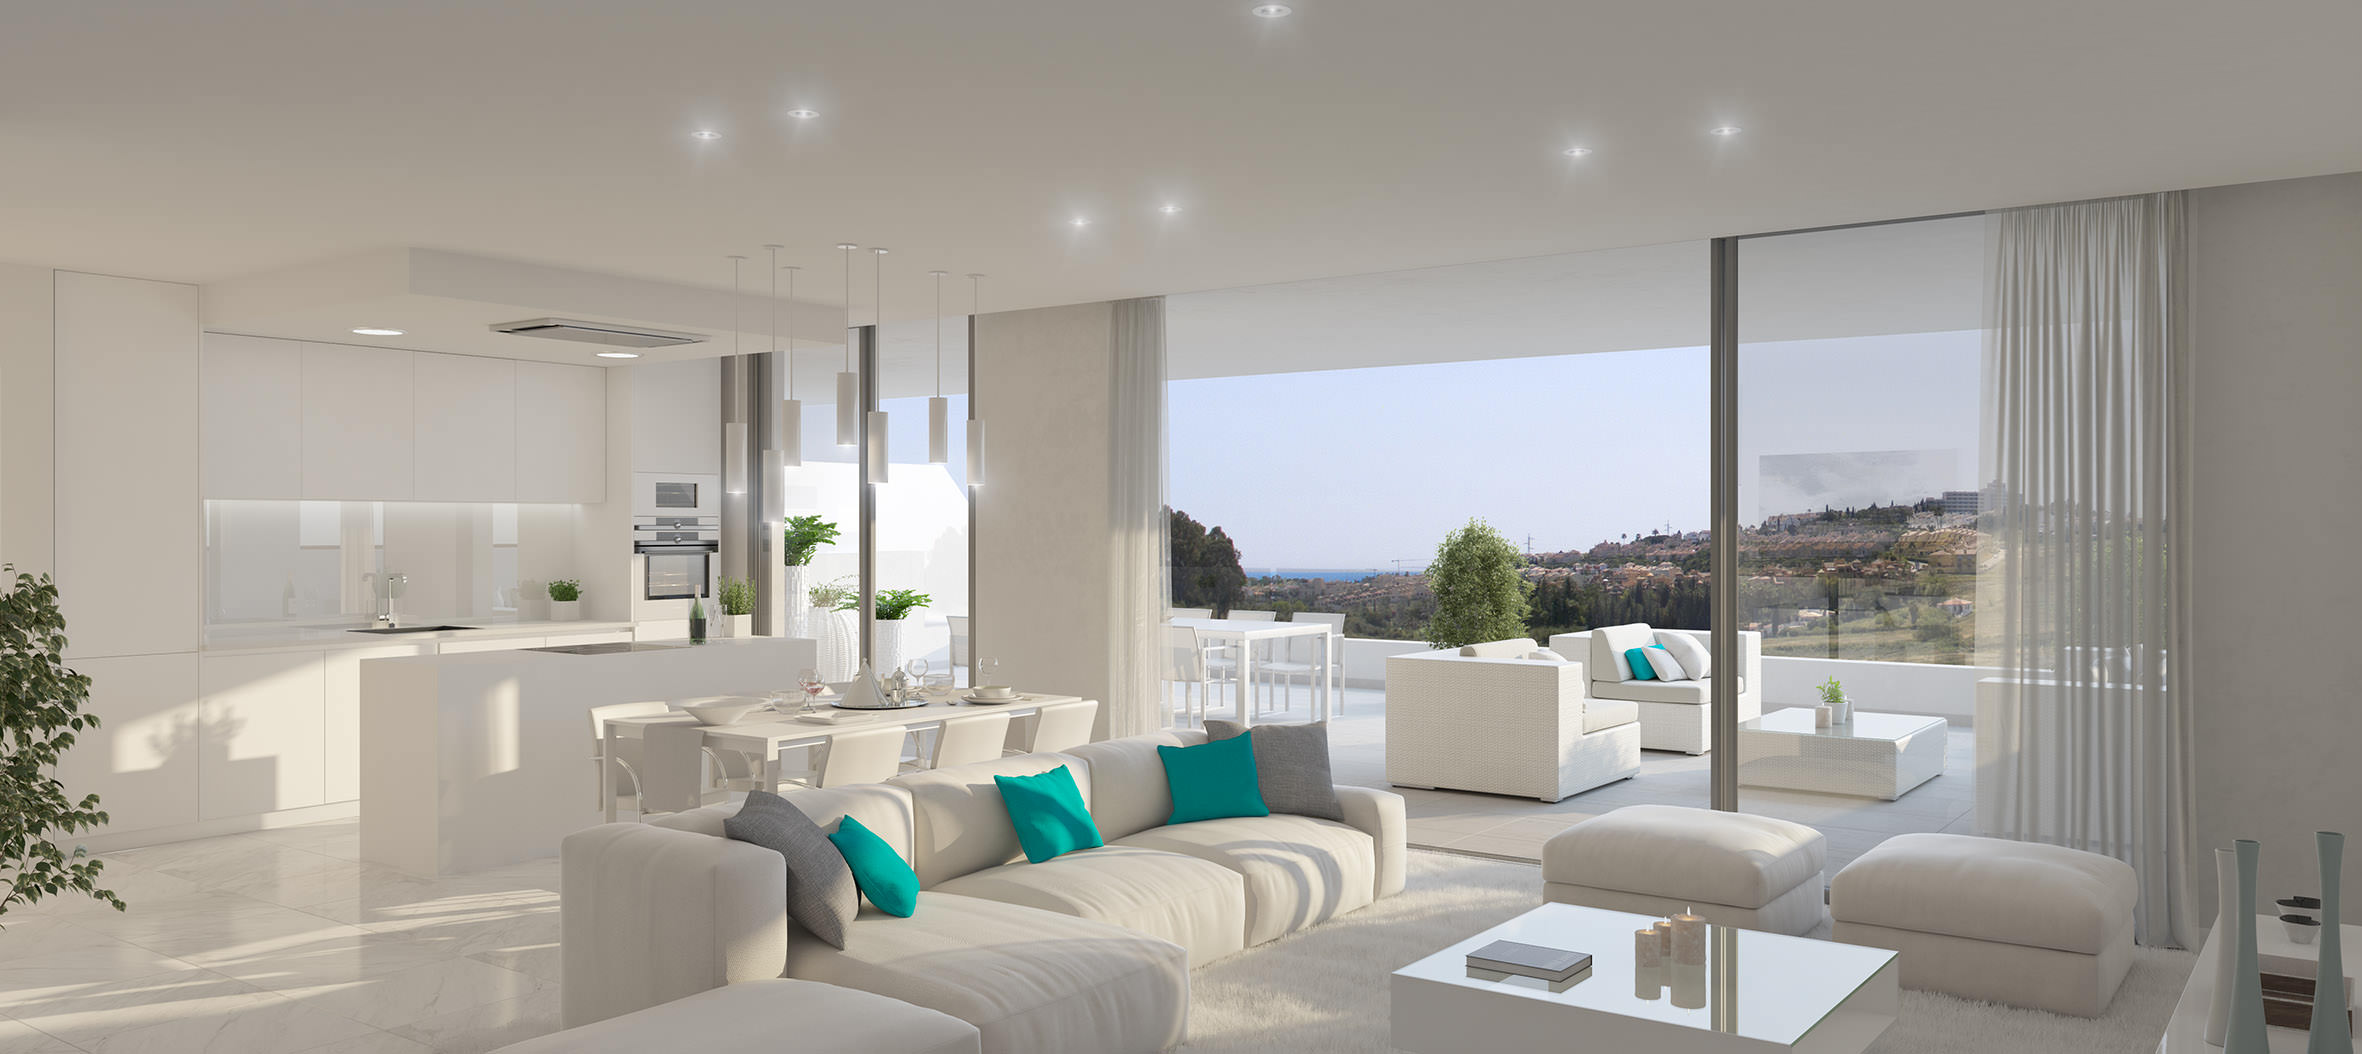 Cataleya estepona modern new development of apartments and for Apartment plans for sale